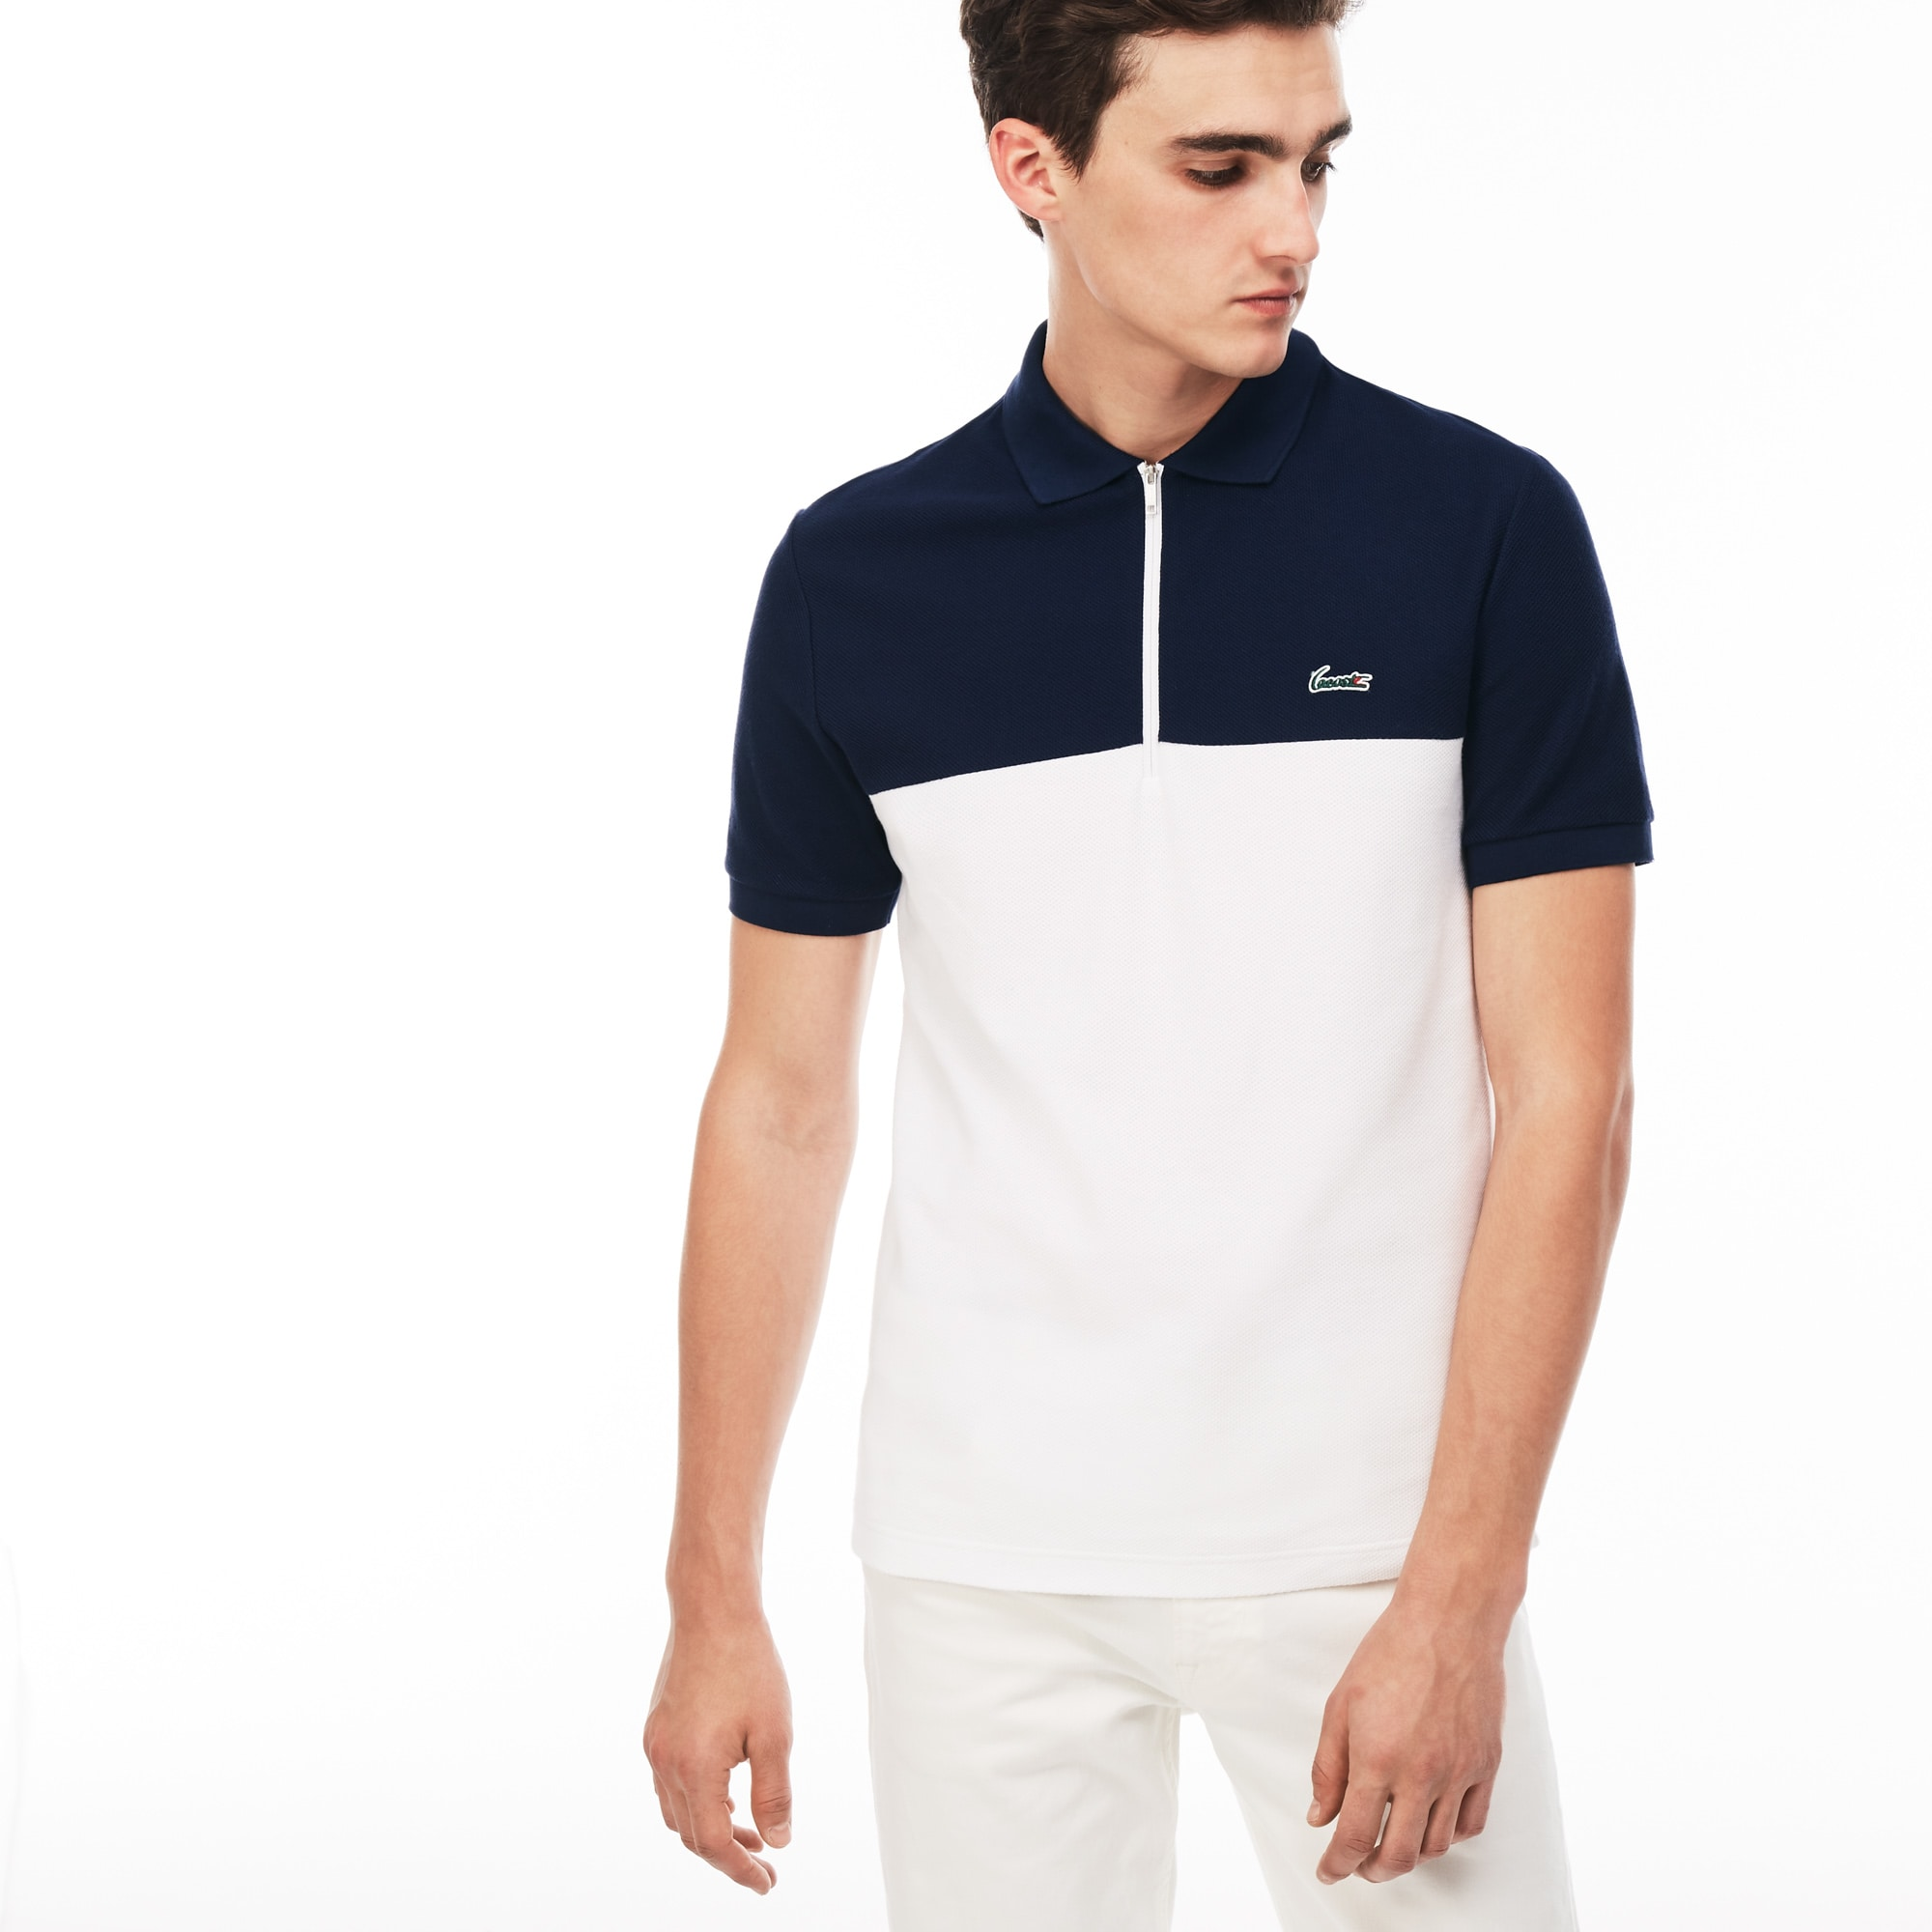 23974205 Men's Lacoste Slim Fit Colourblock Honeycomb Cotton Polo Shirt